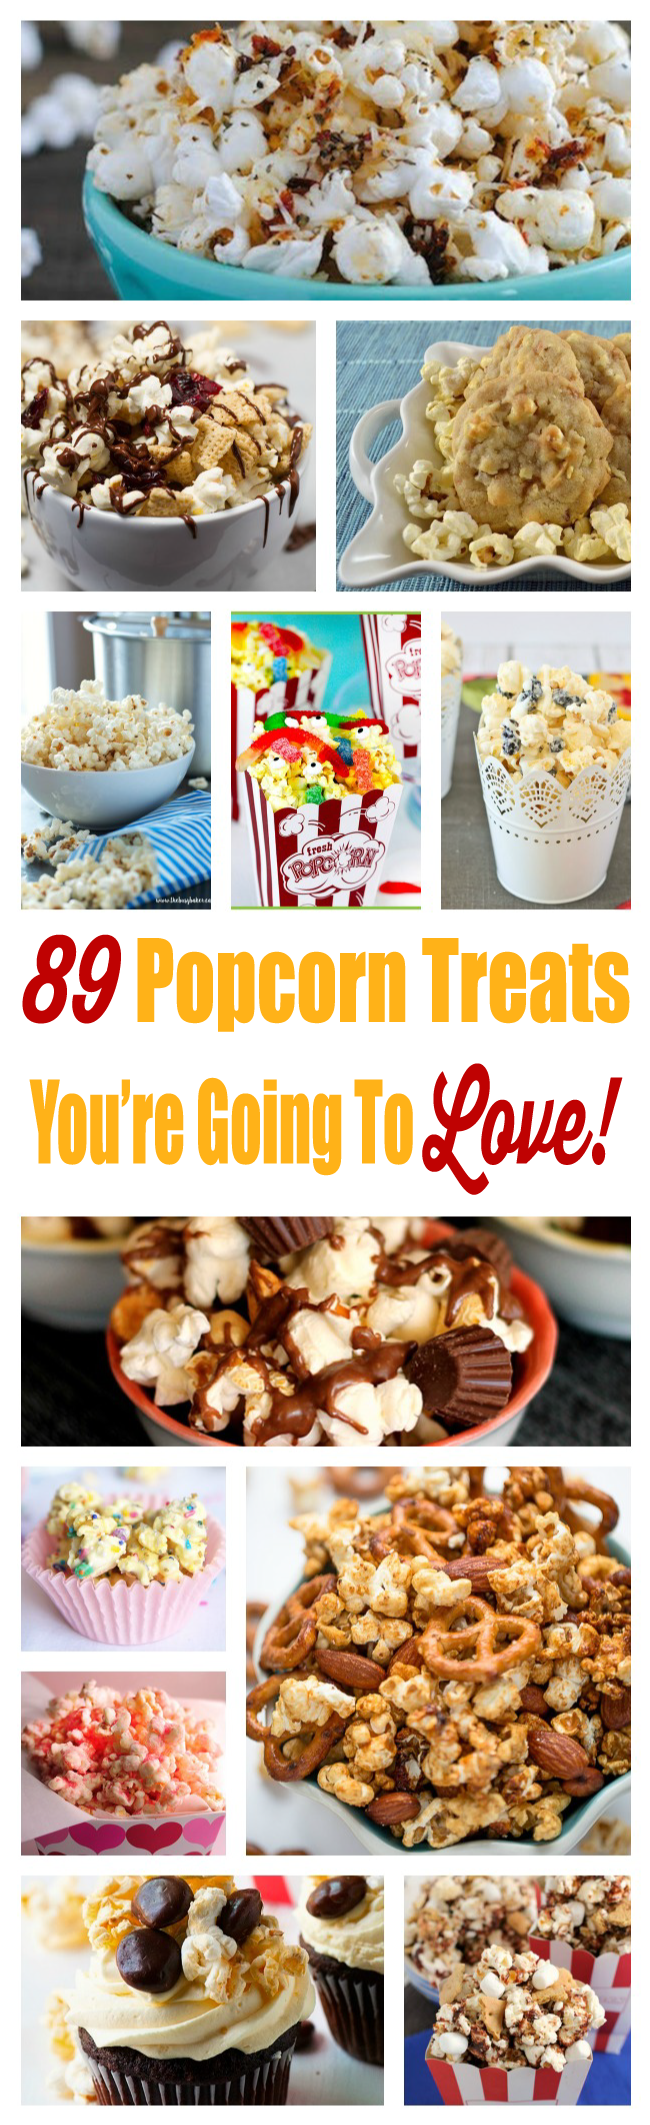 Take this budget friendly treat to the next level with these 89 delish recipes to rock. Get popcorn recipes galore.